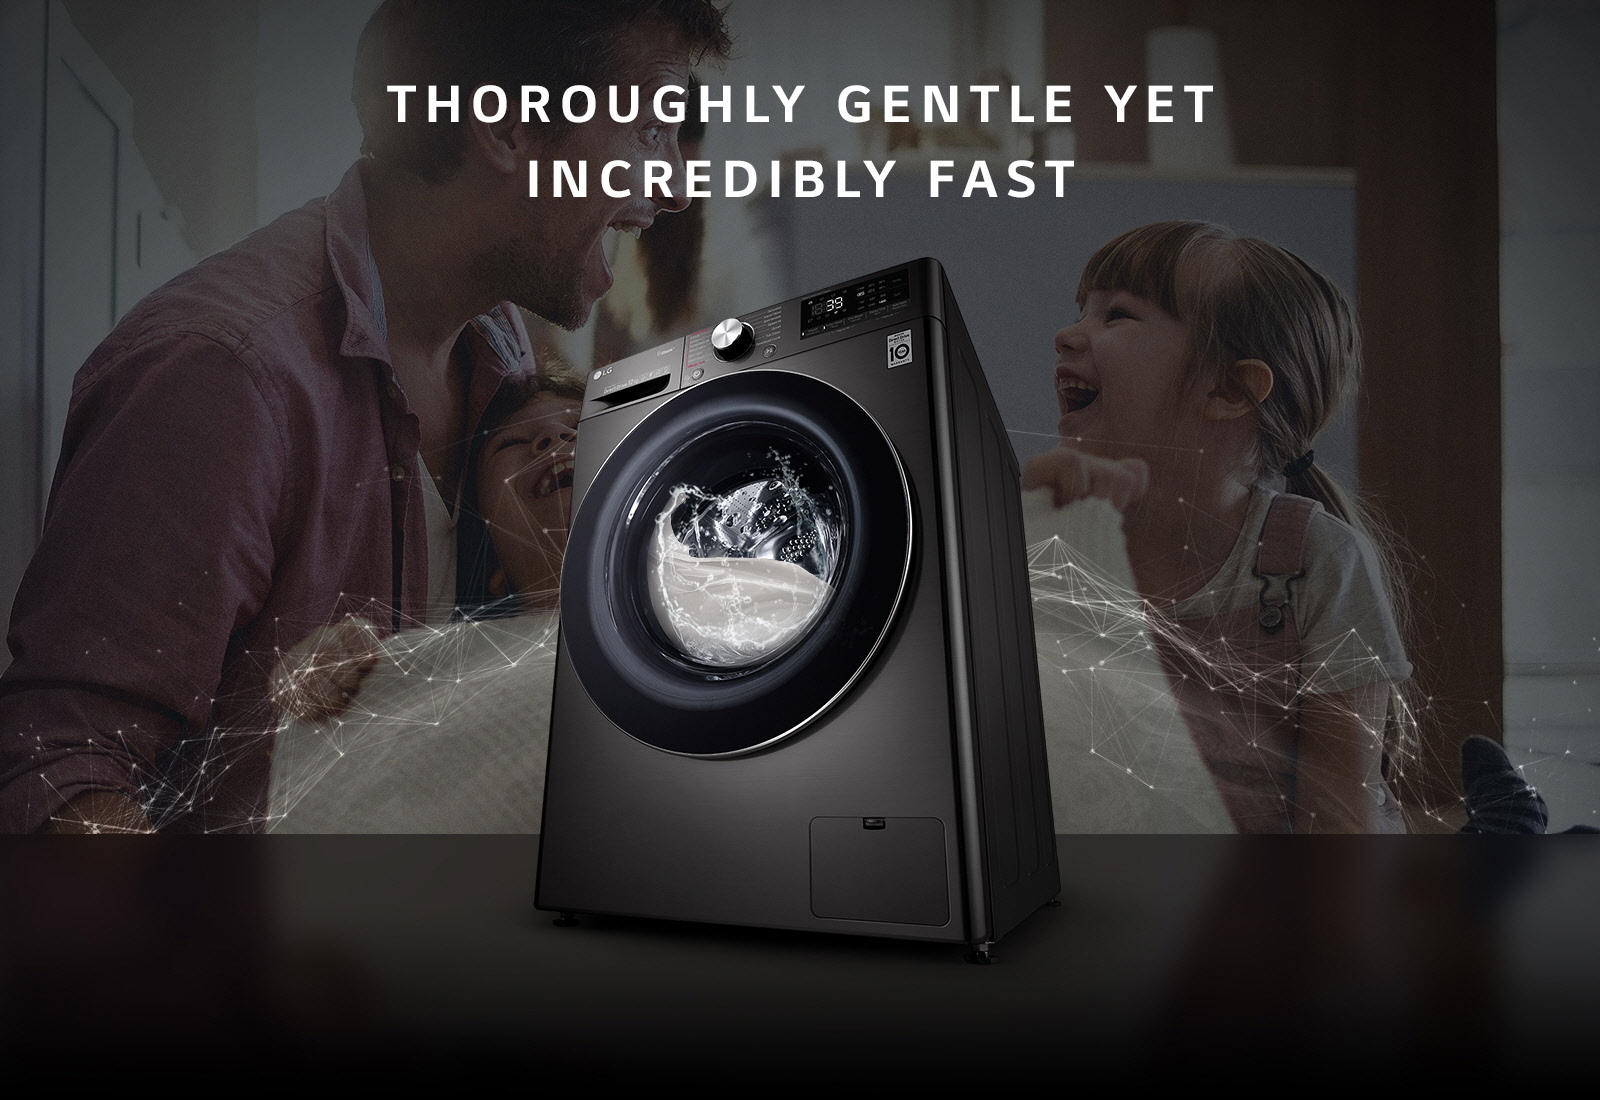 LG F4V9BWP2E THOROUGHLY GENTLE YET INCREDIBLY FAST